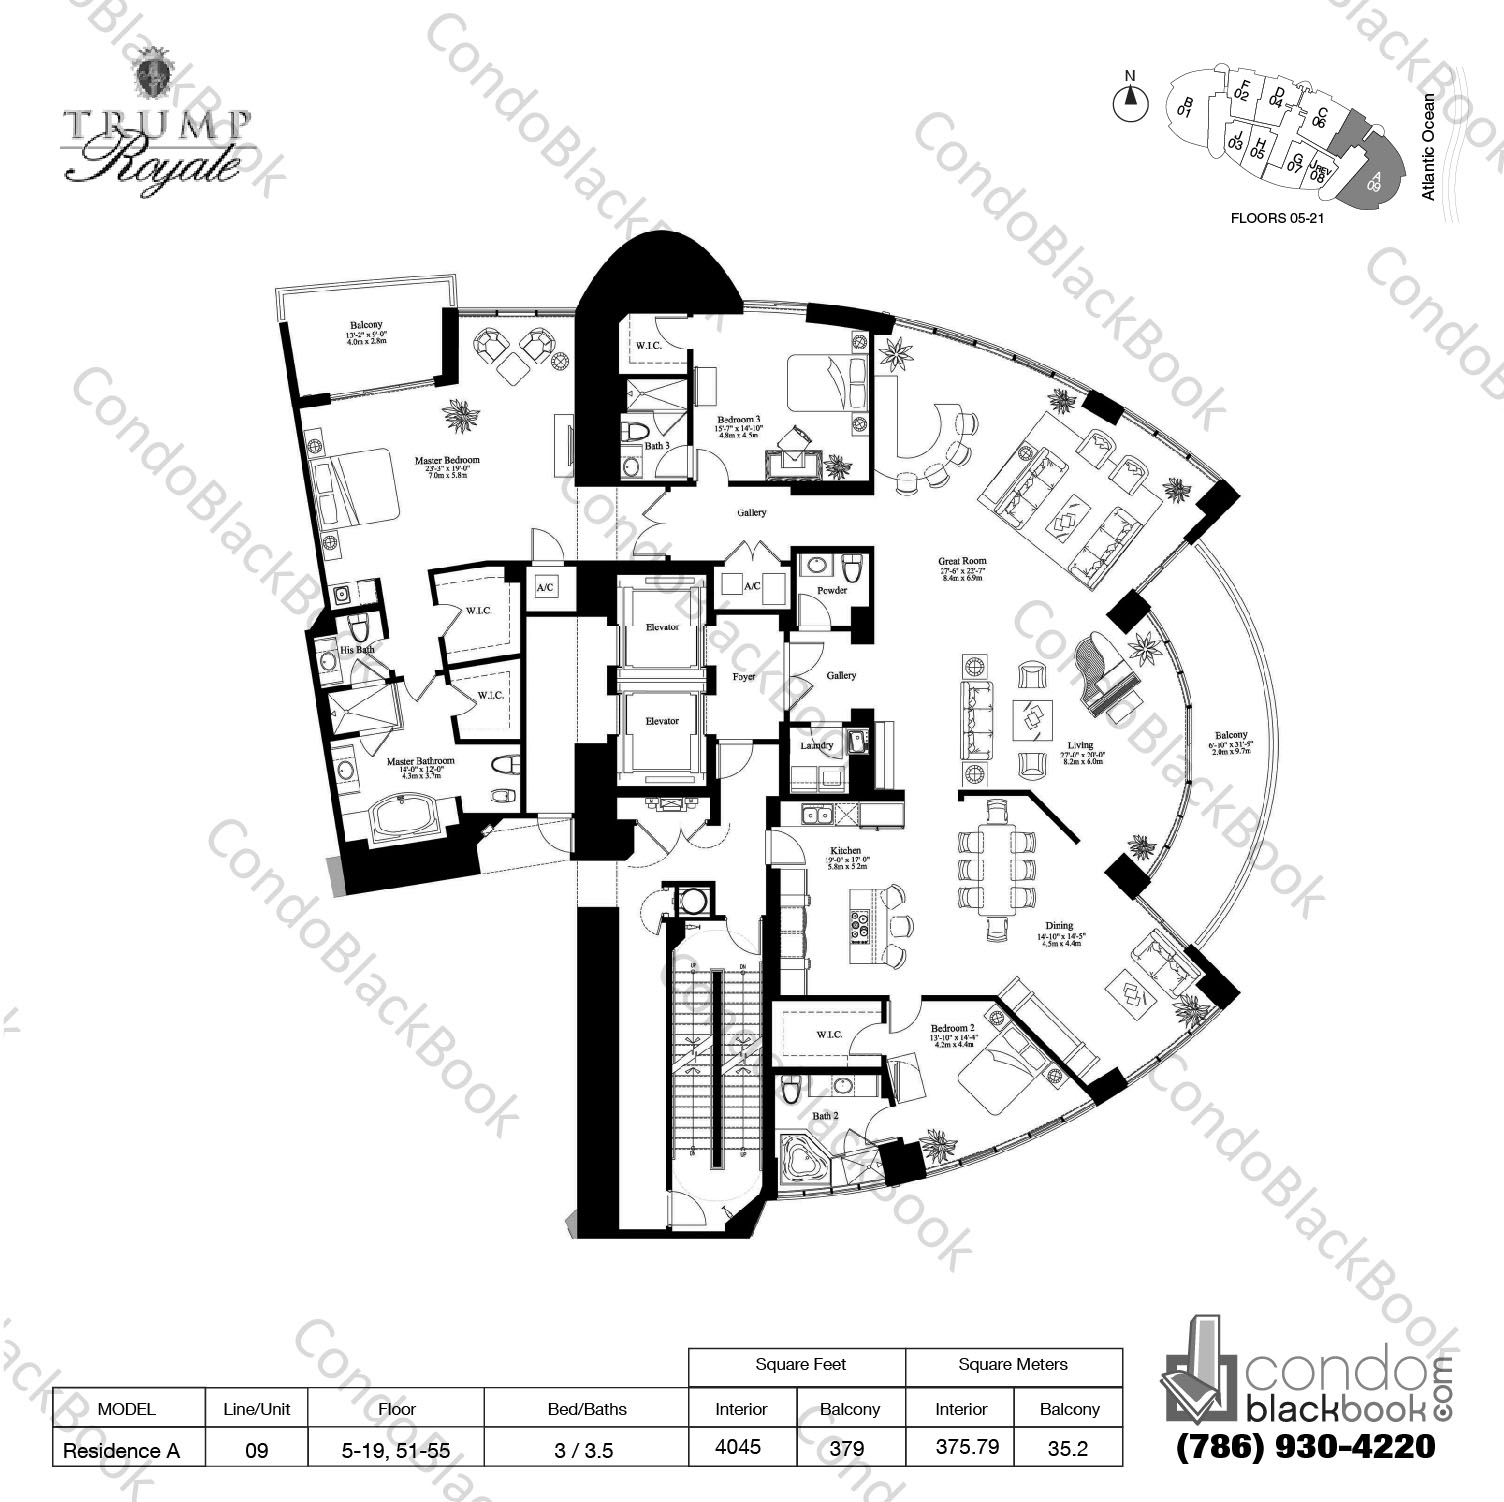 Floor plan for Trump Royale Sunny Isles Beach, model Residence A, line 09, 3 / 3.5 bedrooms, 4054 sq ft